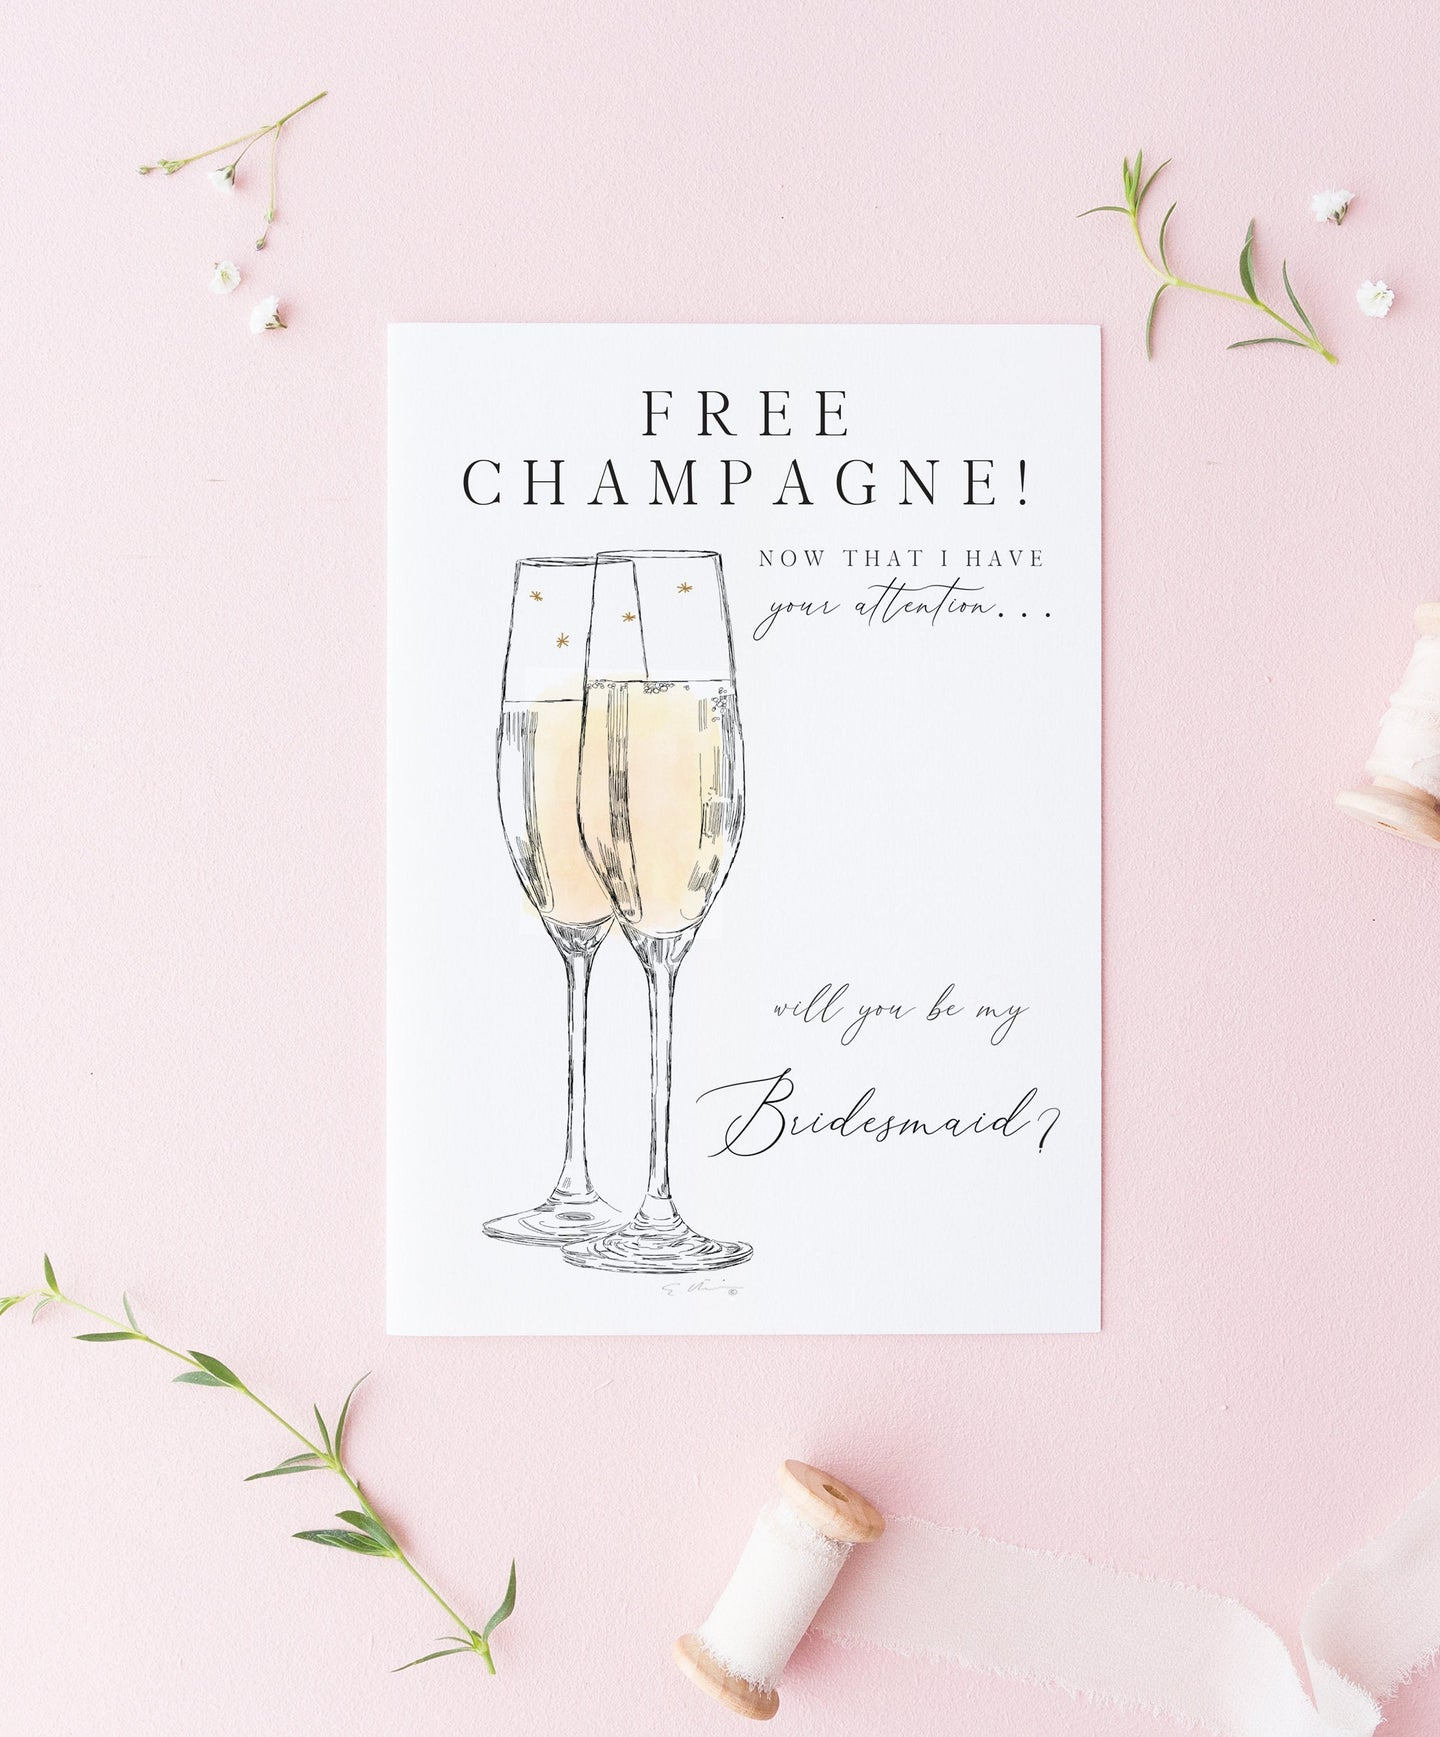 Be My Bridesmaid Card, Bridesmaid Proposal, Bridal Party Cards, Maid of Honor Card - Free Champagne - Matron of Honor Card